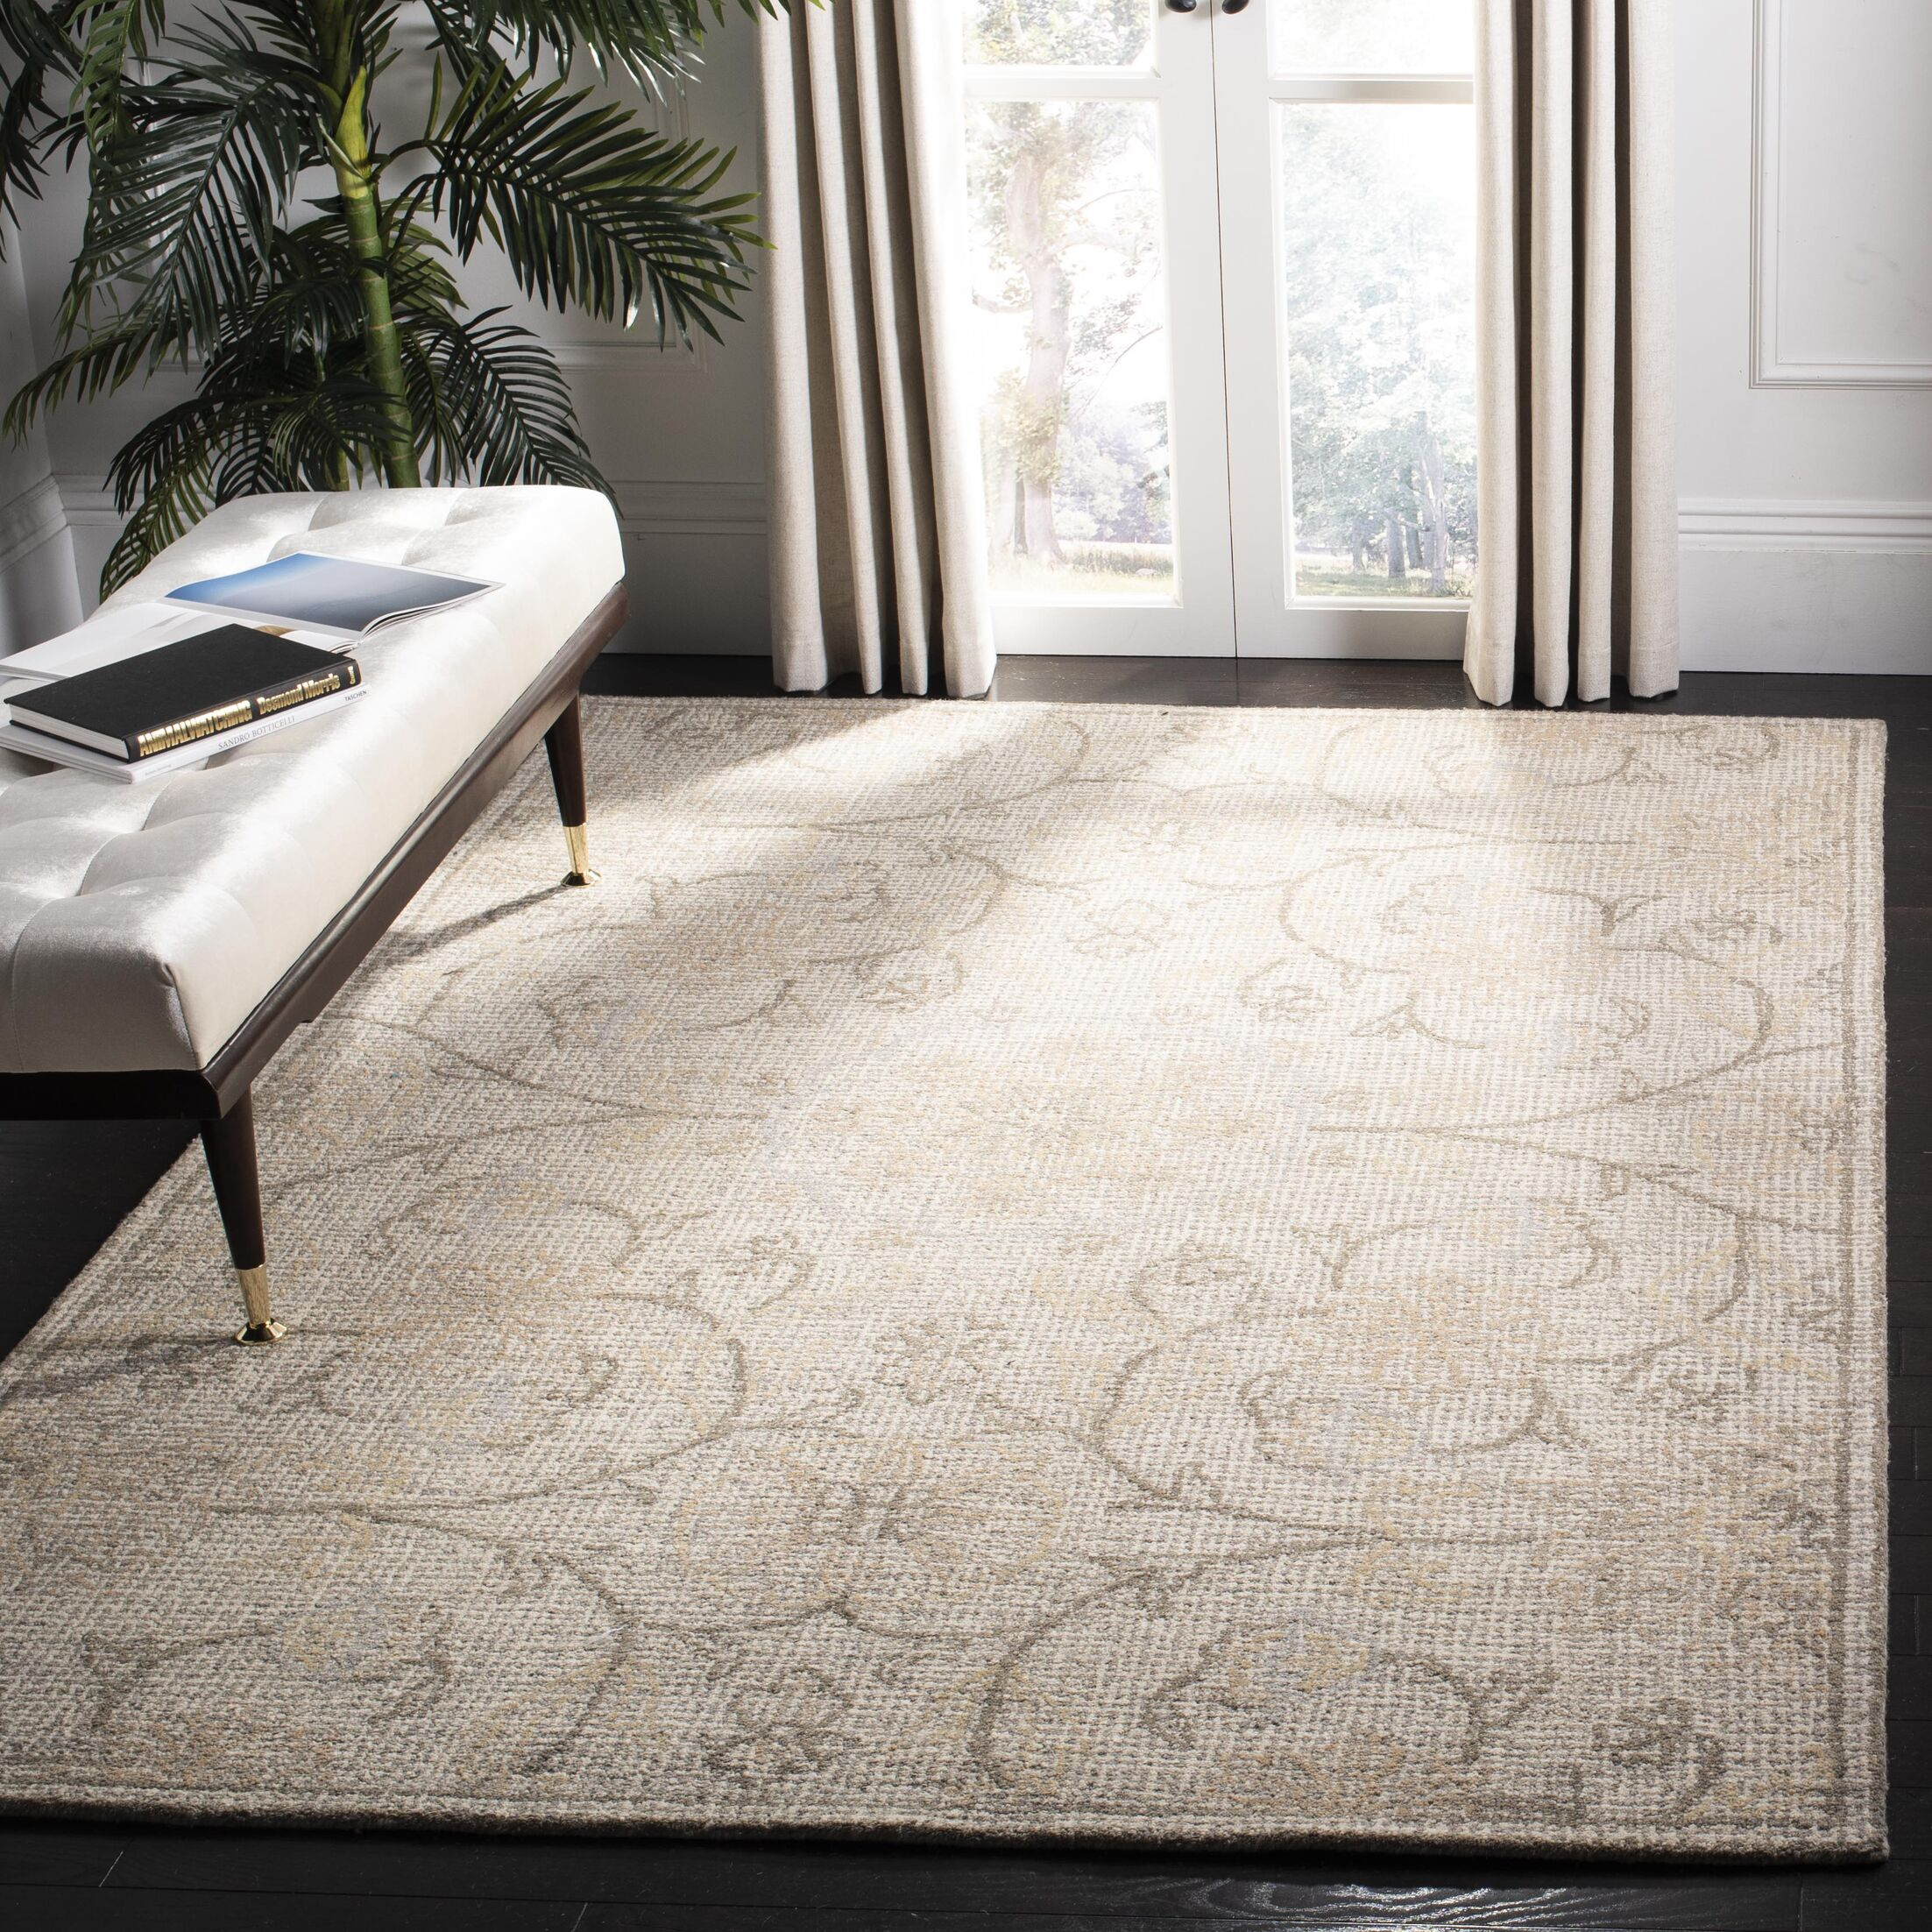 Sulema Hand-Tufted Wool Light Gray/Ivory Area Rug Rug Size: Rectangle 6' x 9'